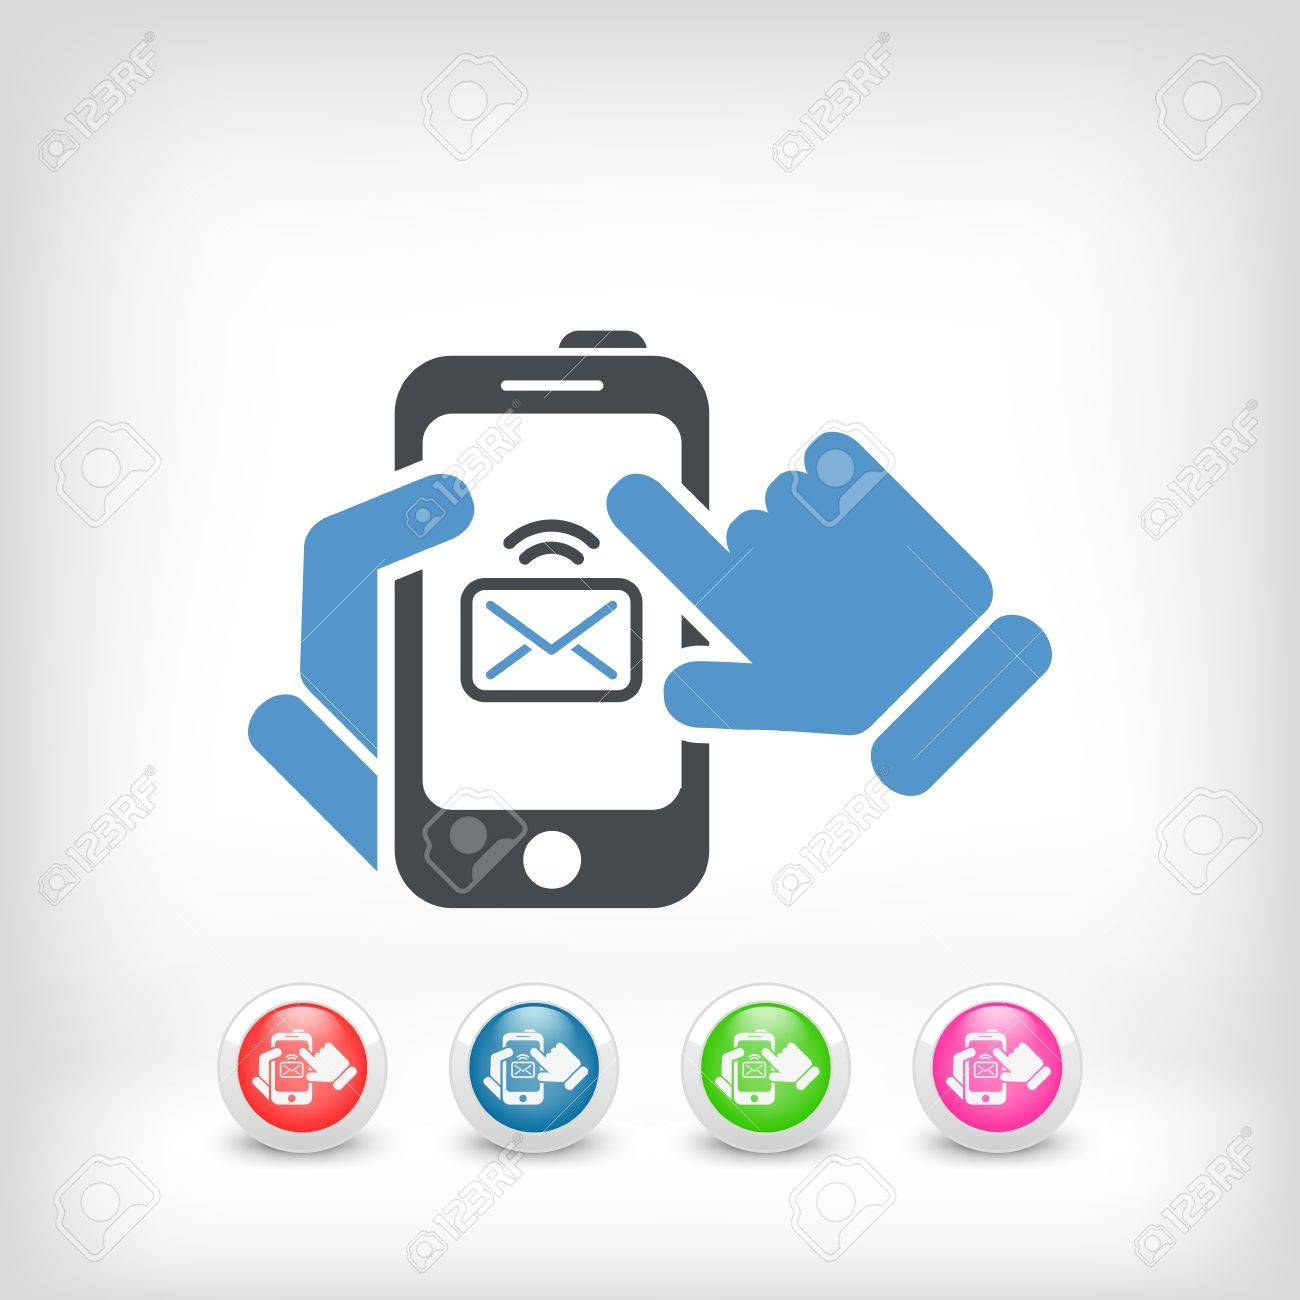 Smartphone mail icon Stock Vector - 20084328